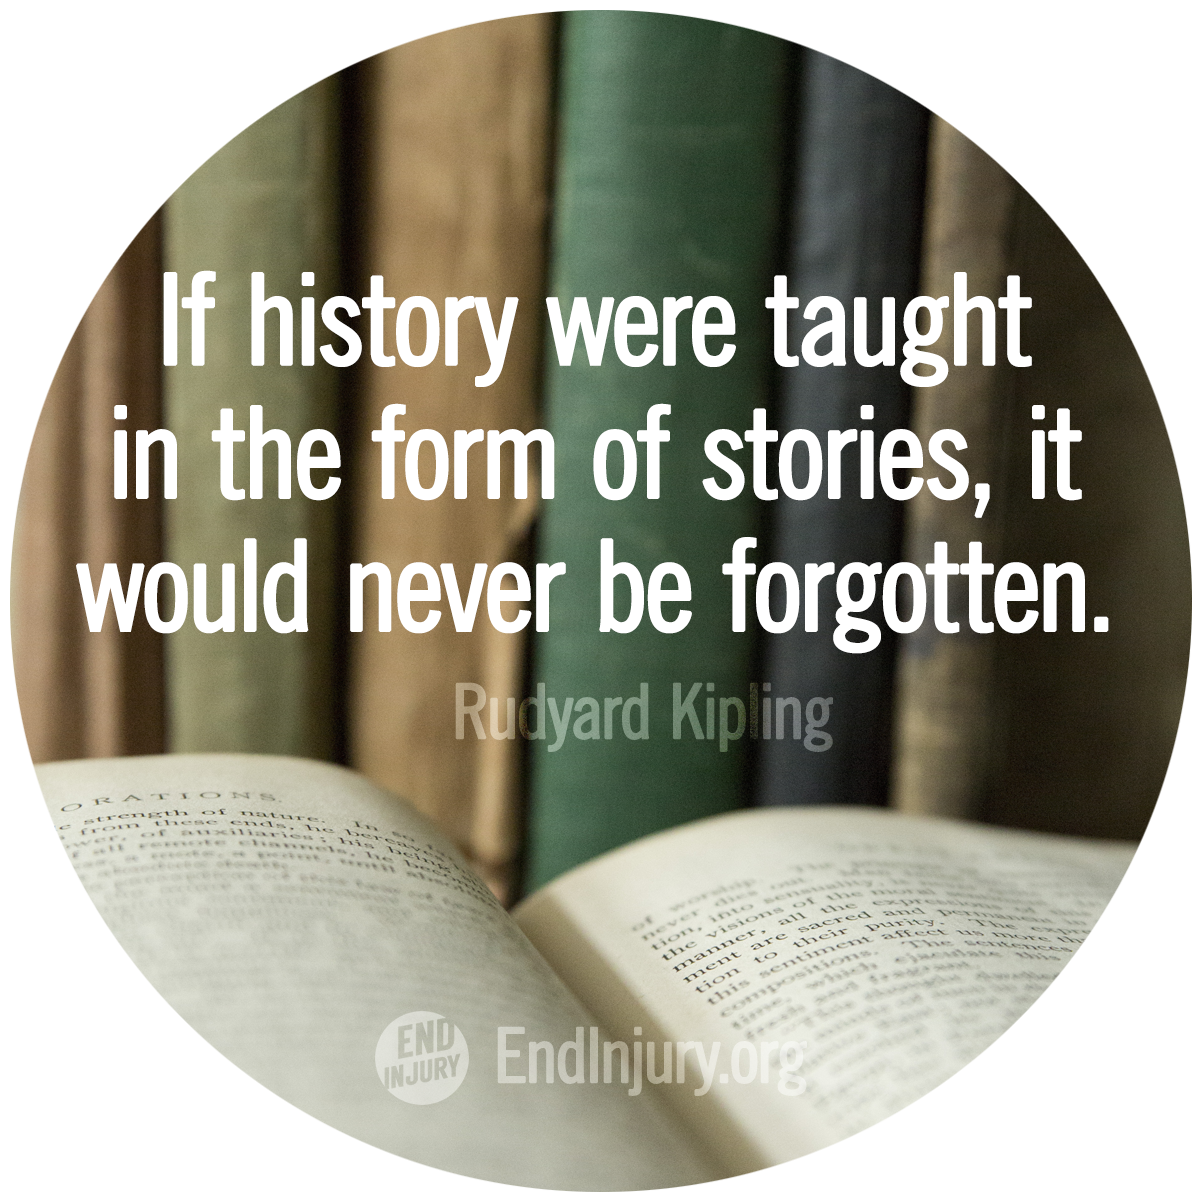 history-stories-kipling-quote-photo.png